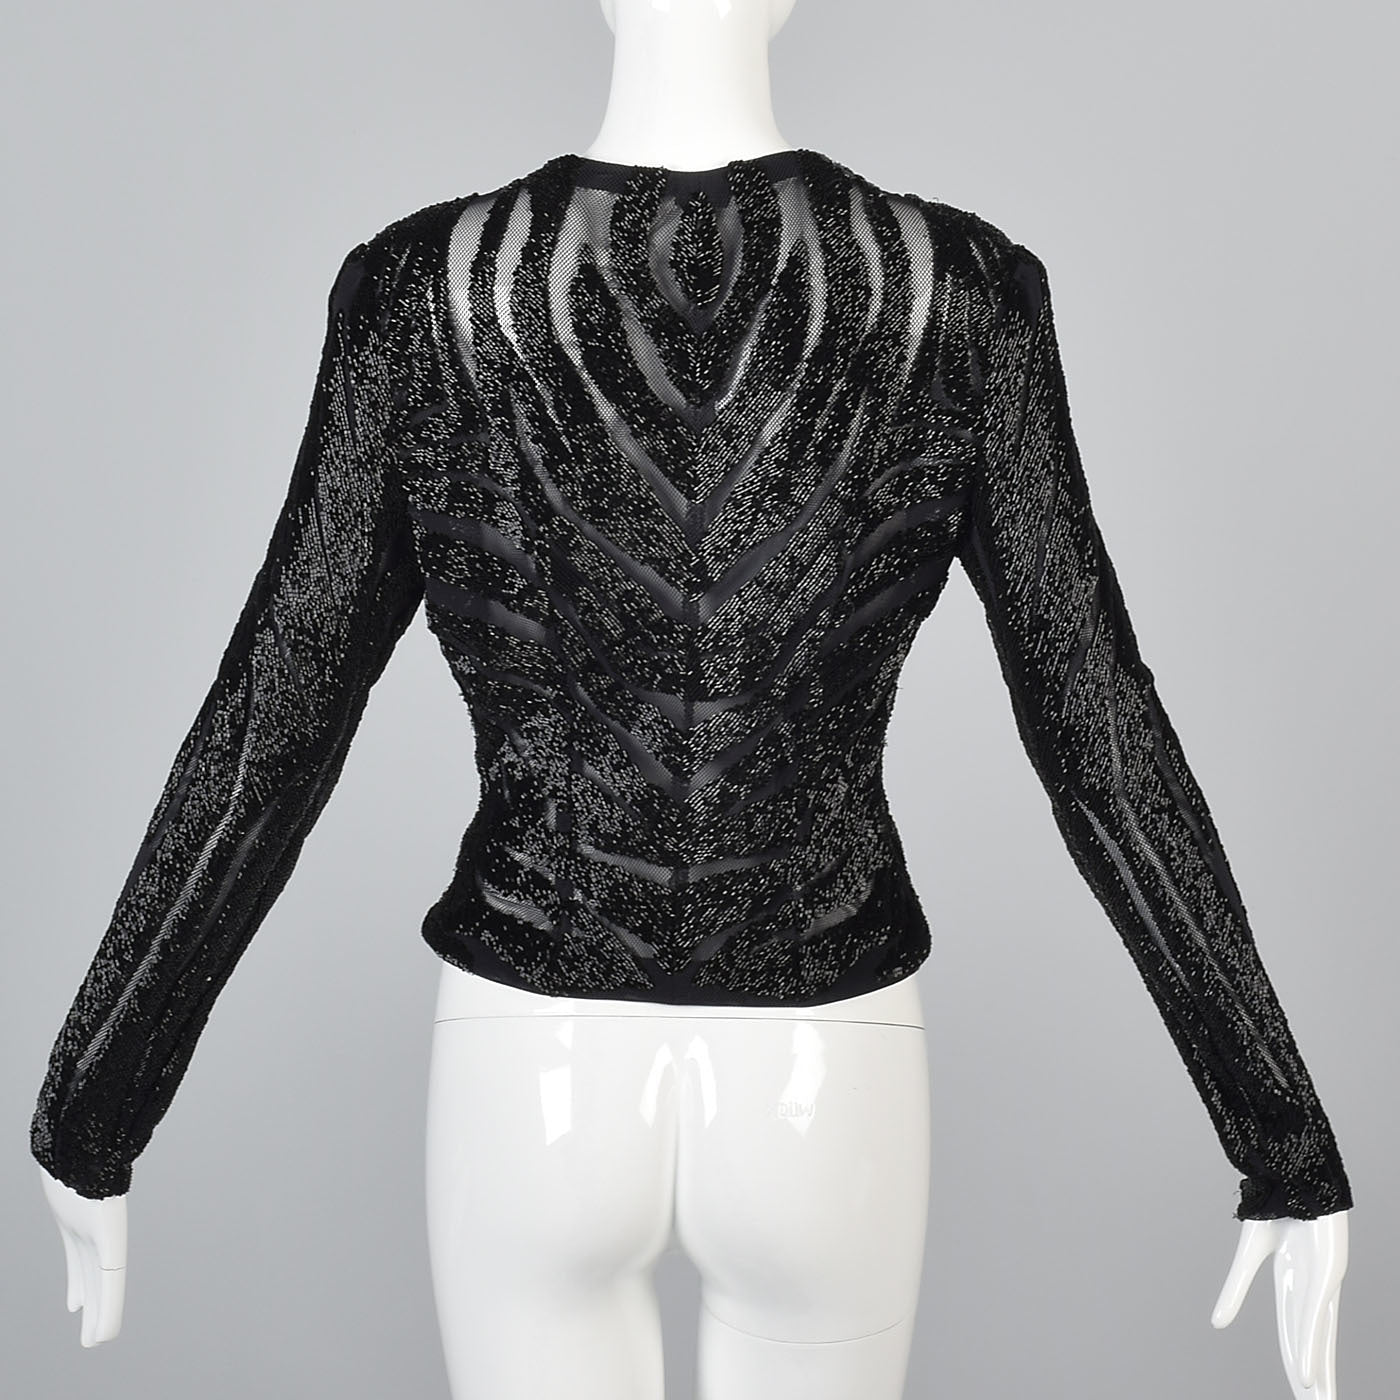 Heavily Beaded Black Stretch Mesh Body Con Evening Jacket Sheer with Zebra Stripes